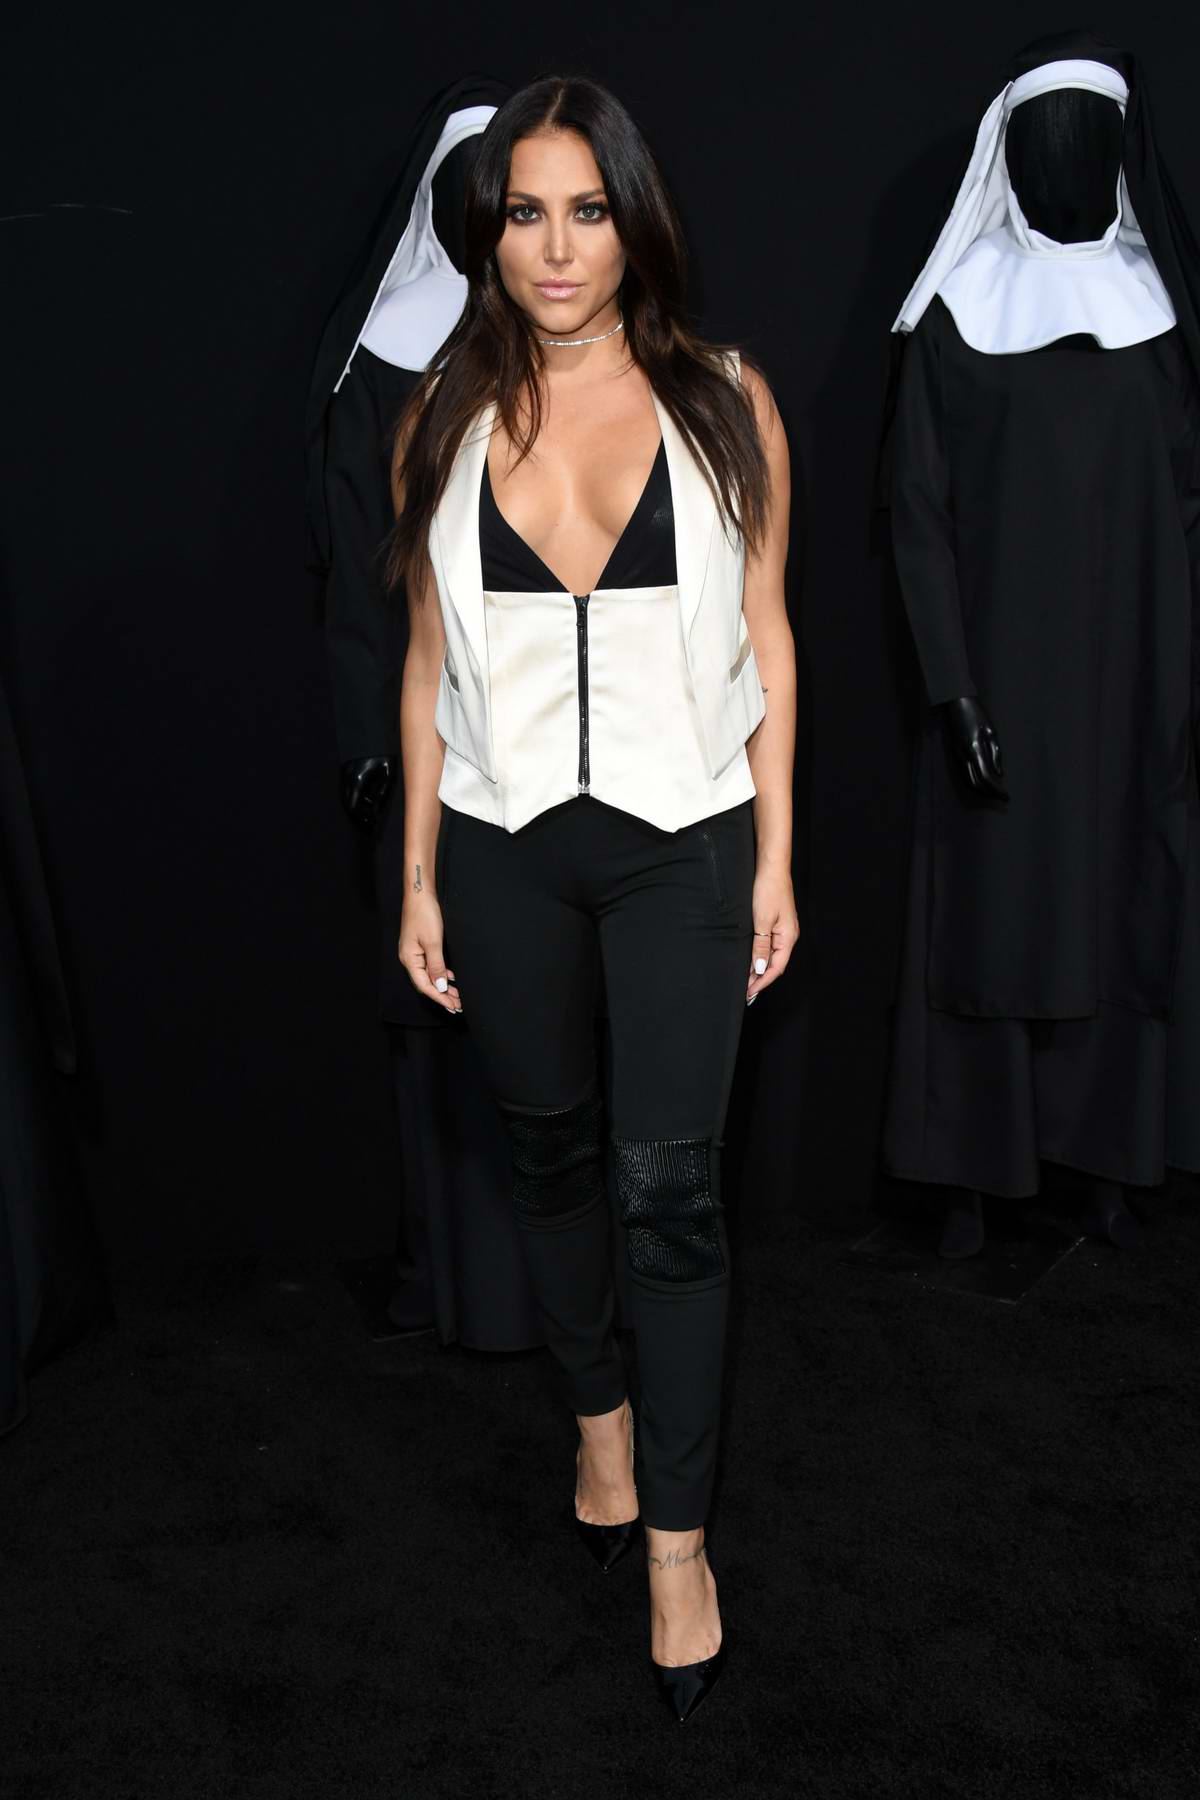 Cassie Scerbo attends 'The Nun' film premiere at TCL Chinese Theatre in Hollywood, Los Angeles